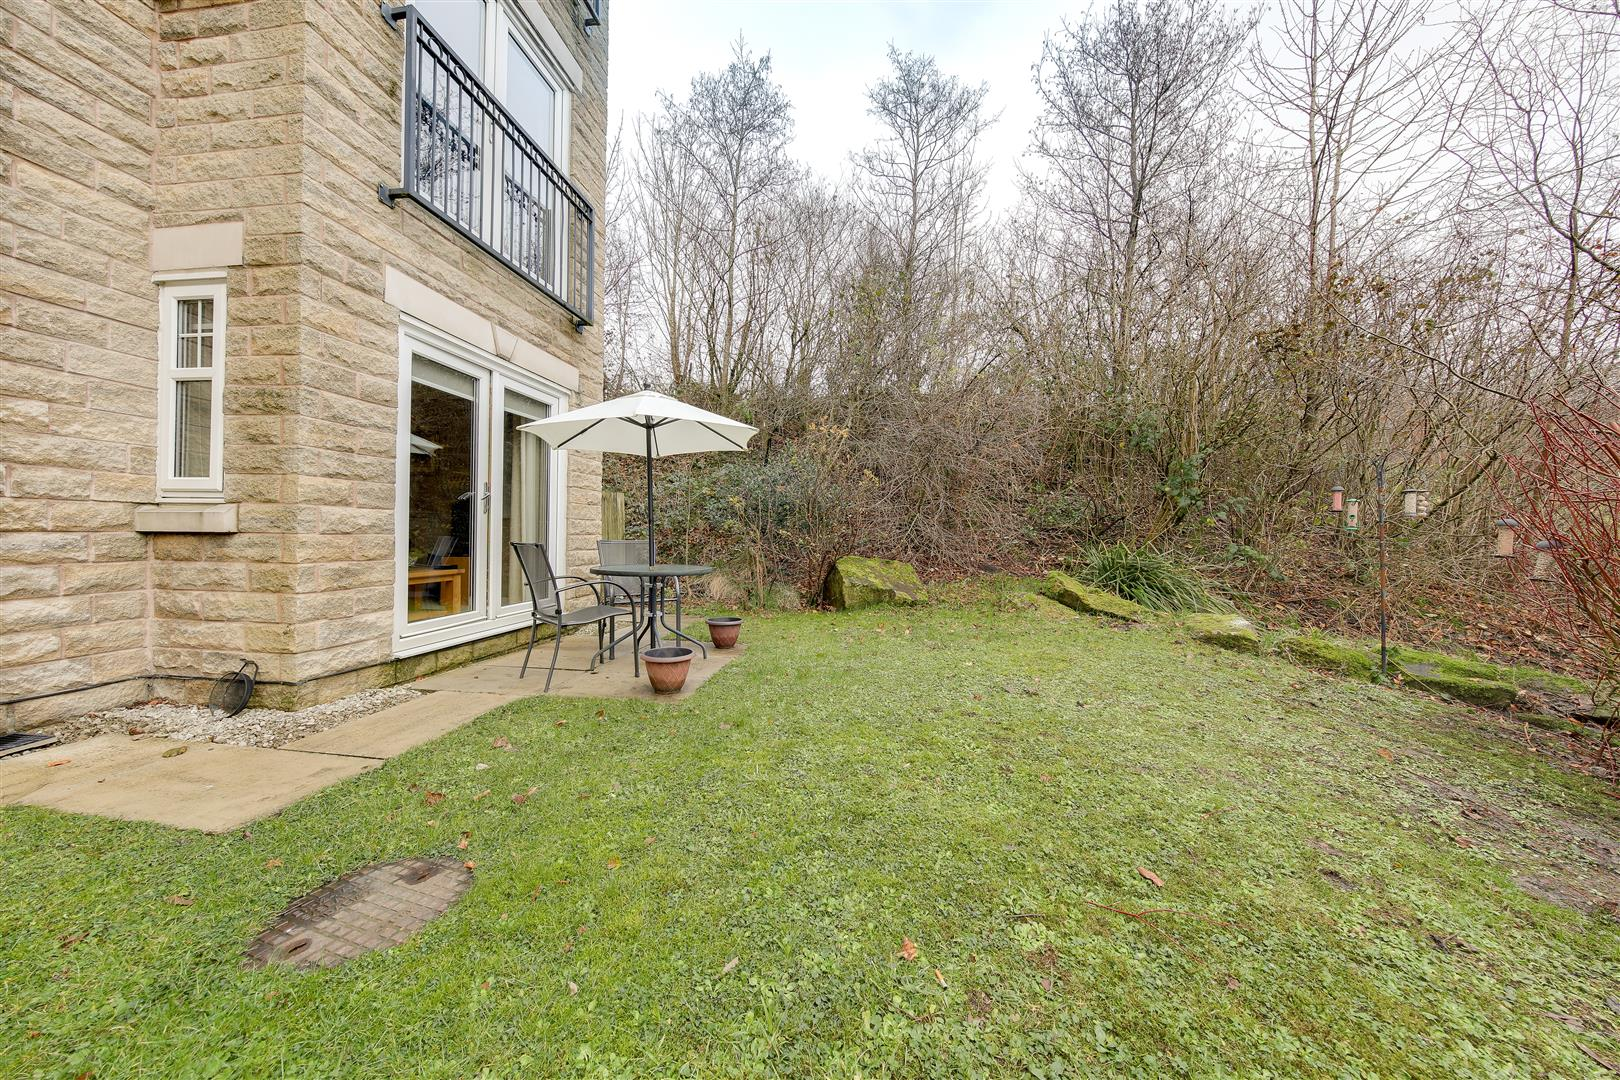 2 Bedrooms Apartment Flat for sale in Grange Park Way, Helmshore, Rossendale